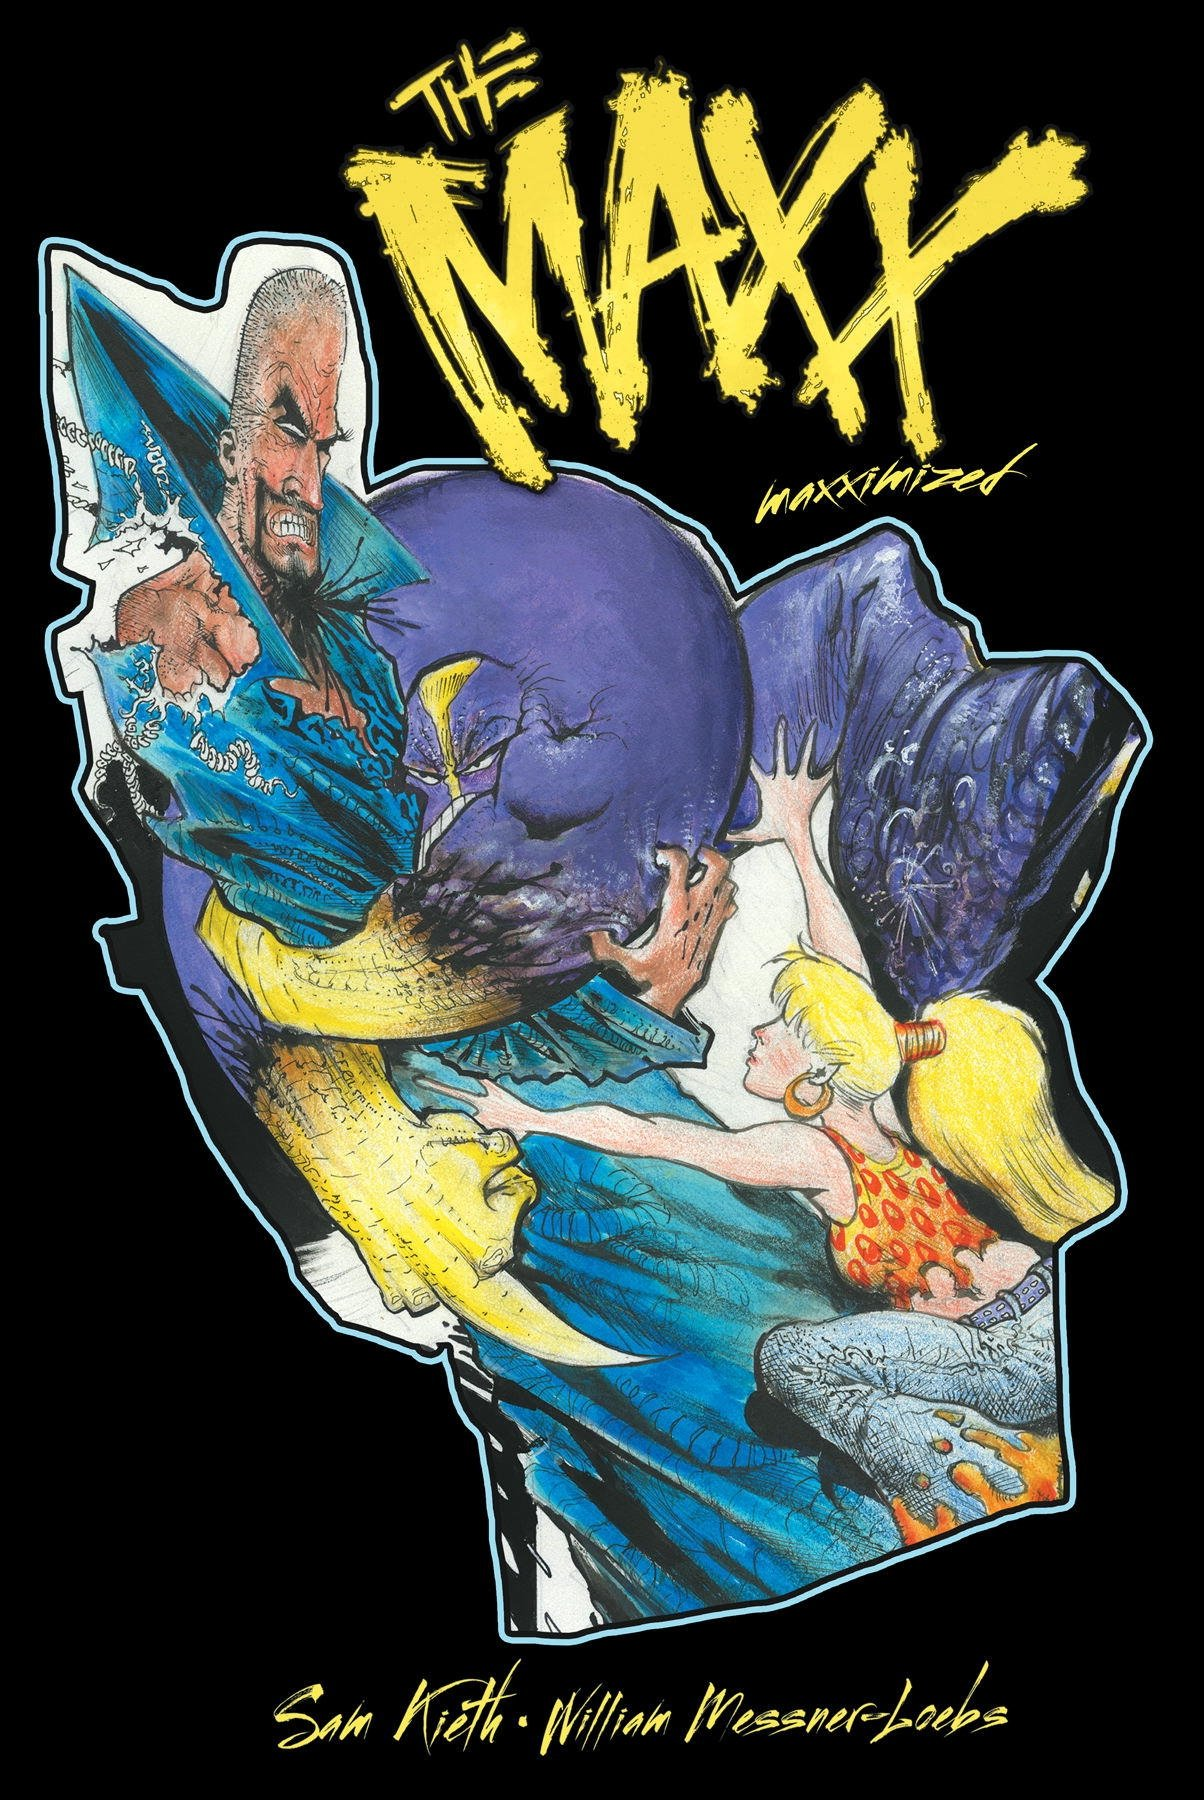 Download The Maxx: Maxximized Volume 5 ebook